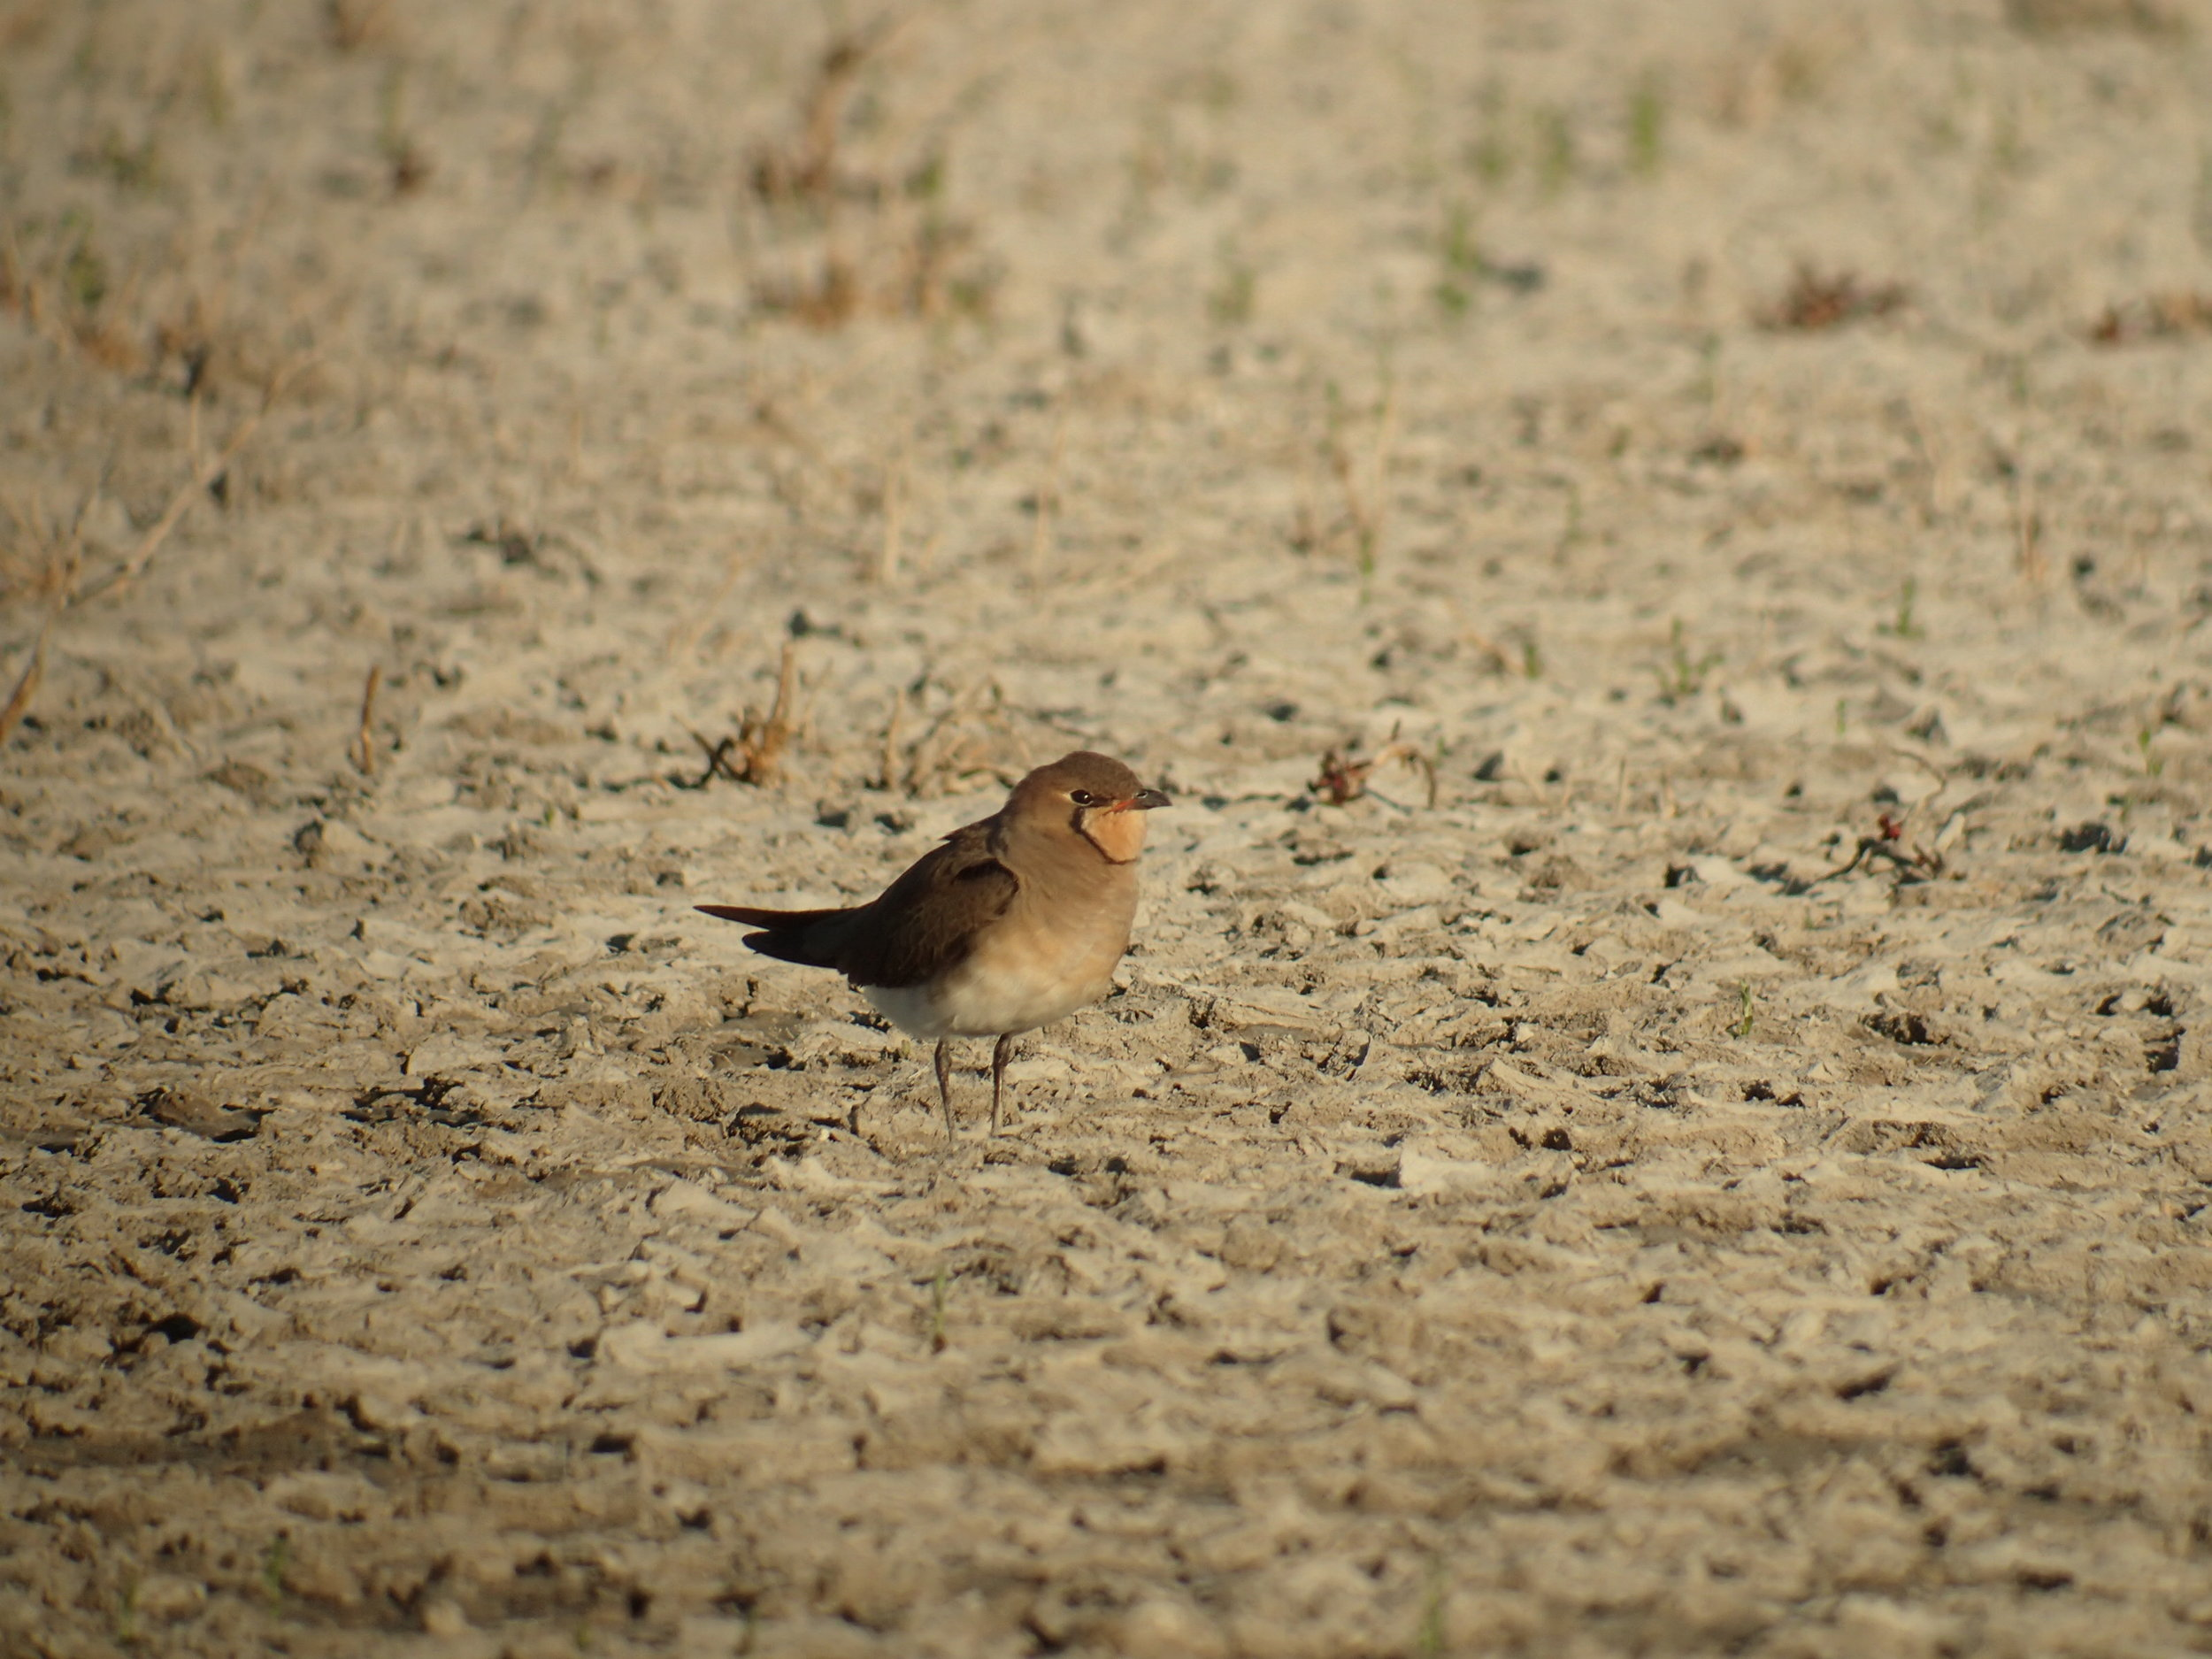 Rarely seen during the dry season - Oriental Pratincoles at Kidney Bean (Photo: Emilia Lai) and Roebuck Plains (east of Hwy) (Photo: Jim Attard)